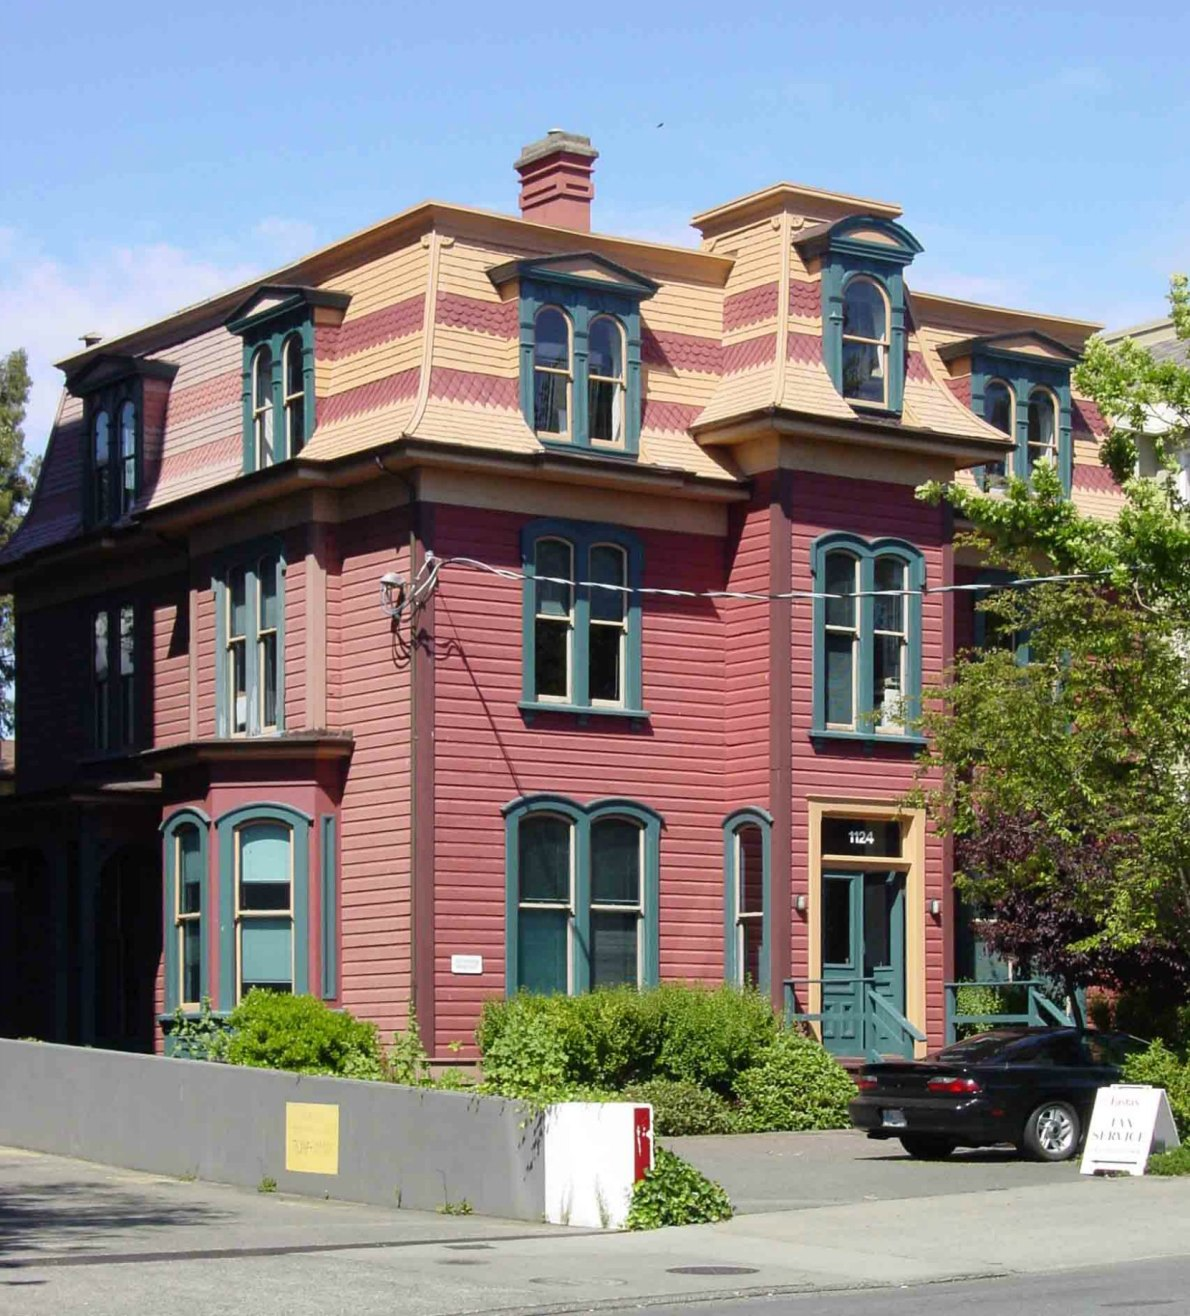 1124 Fort Street in 2005, before the verandah replacement. (photo by Victoria Online Sightseeing)